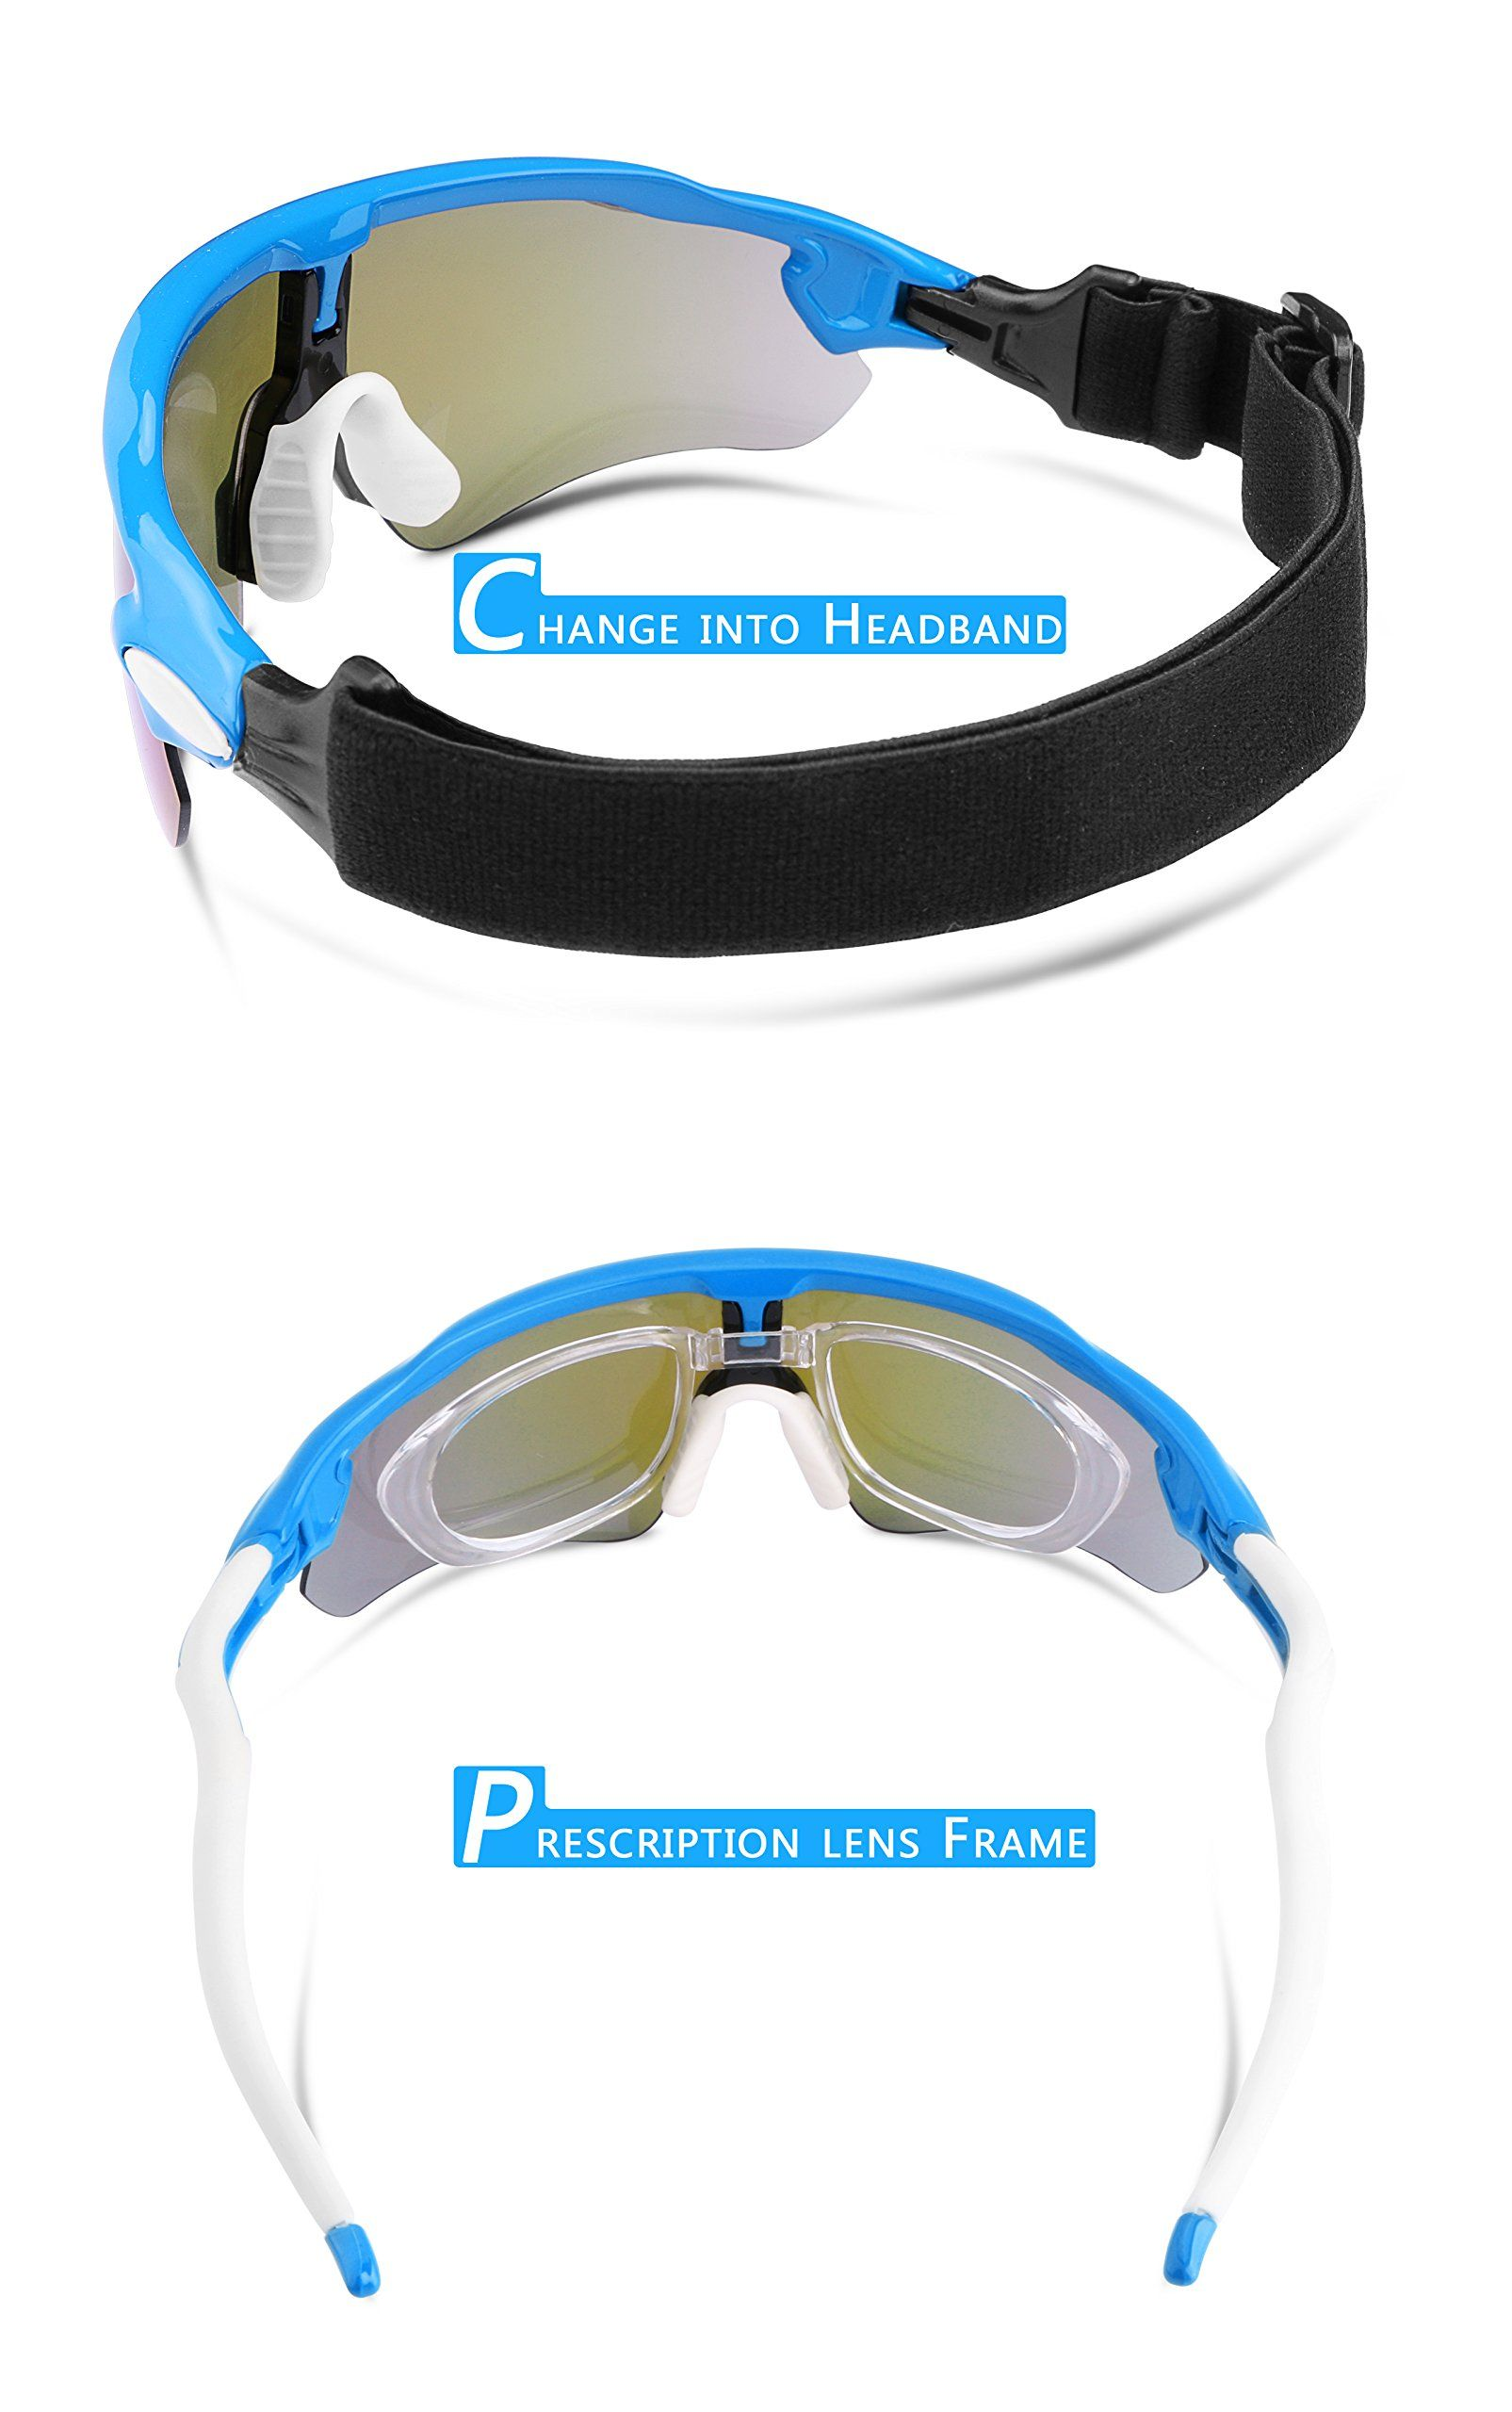 d9b76be4da4 FEISEDY Polarized Sports Sunglasses REVO Changeable Lenses TR90 Frame  Cycling B2280 -- Visit the image link more details. (It is Amazon affiliate  link)   ...